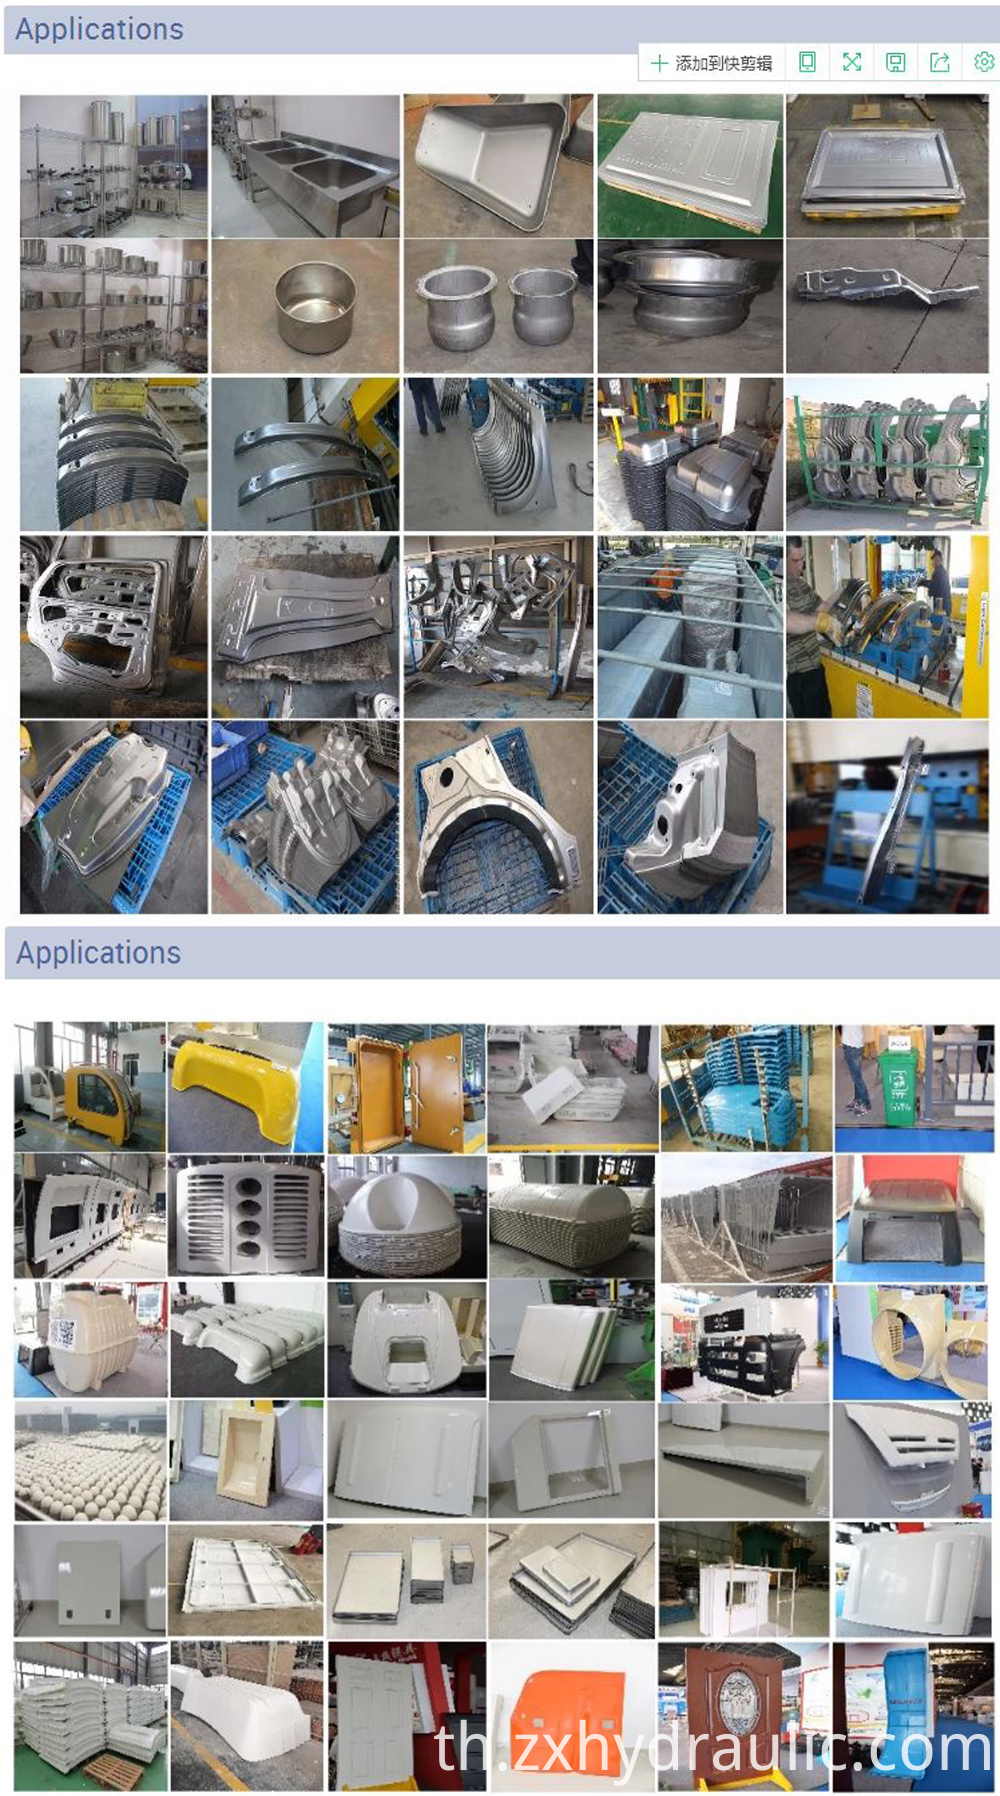 Hydraulic Press Machine Application